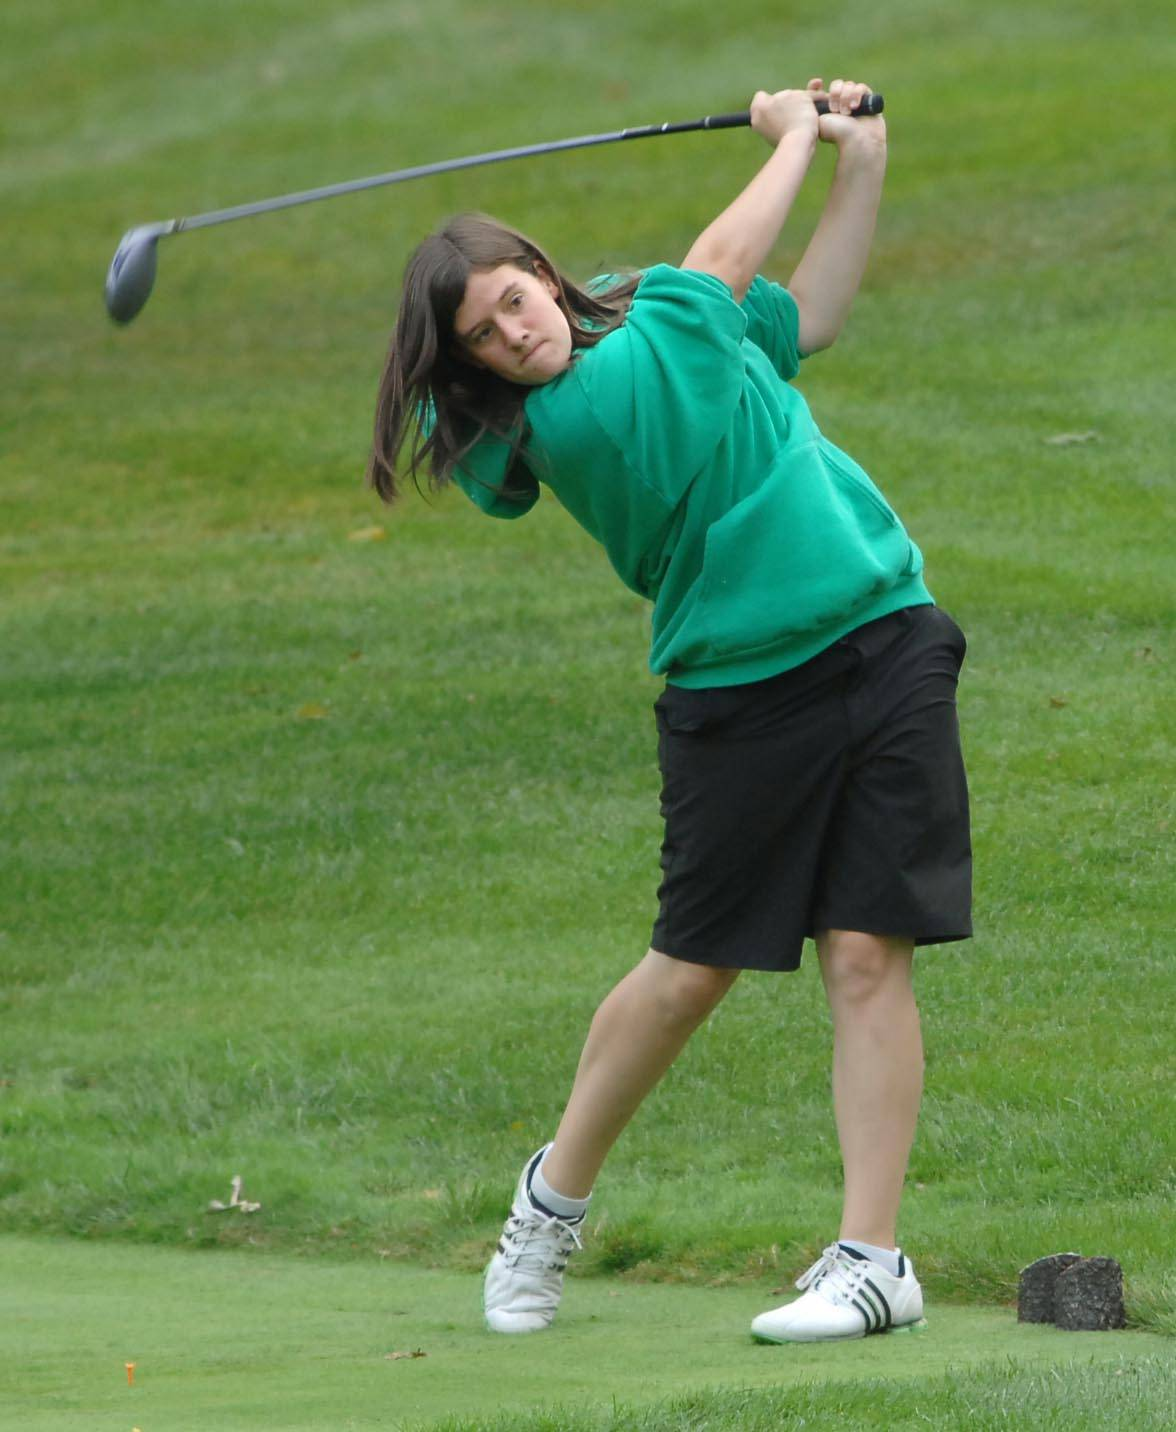 Ryan Scully of St. Edward drives off the tee at last year's Elgin Country Club girls golf invitational. Scully, a senior, is a returning state qualifier.